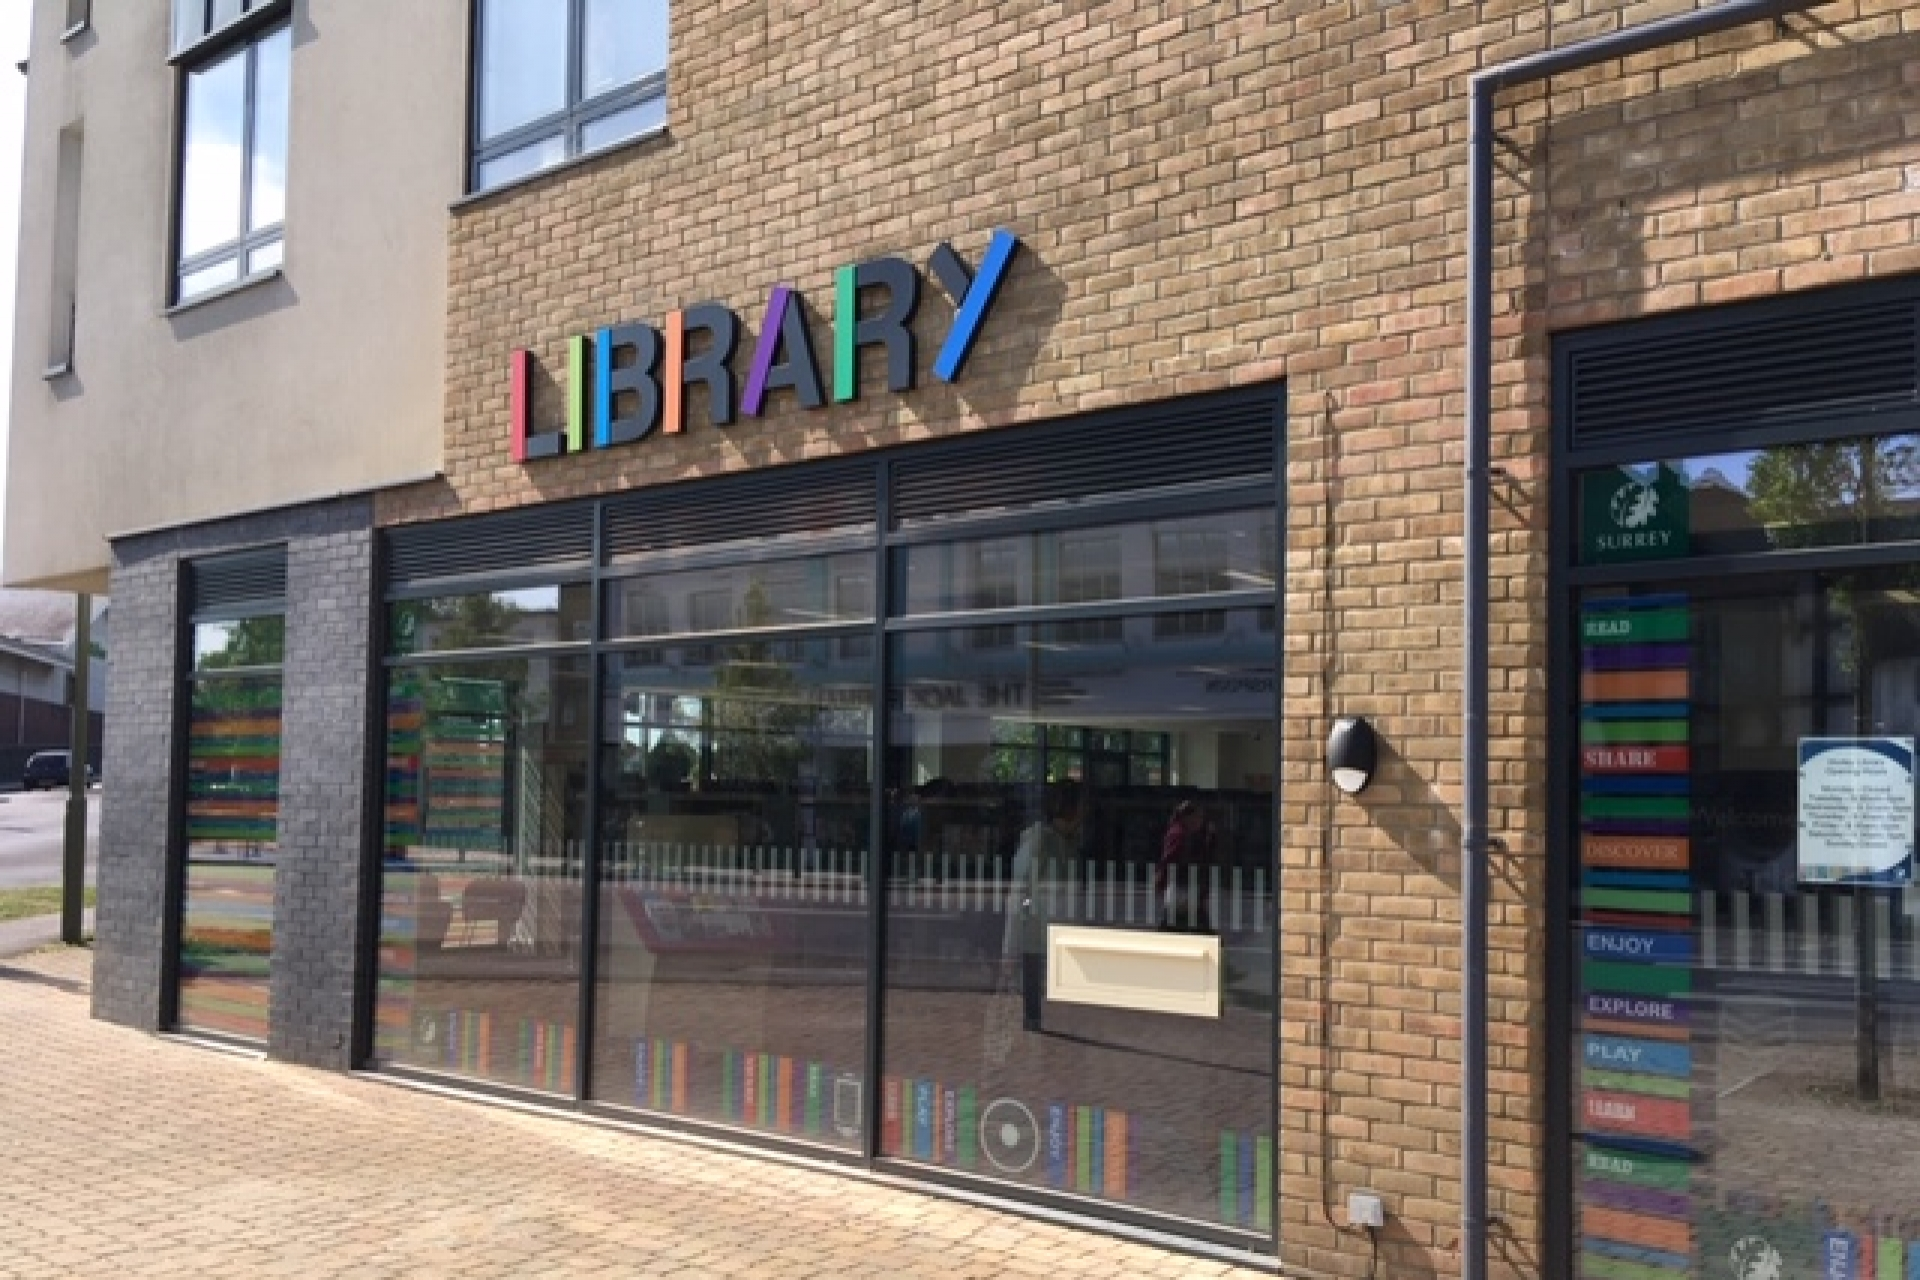 LoveReading Library of the Month #11: Horley Library